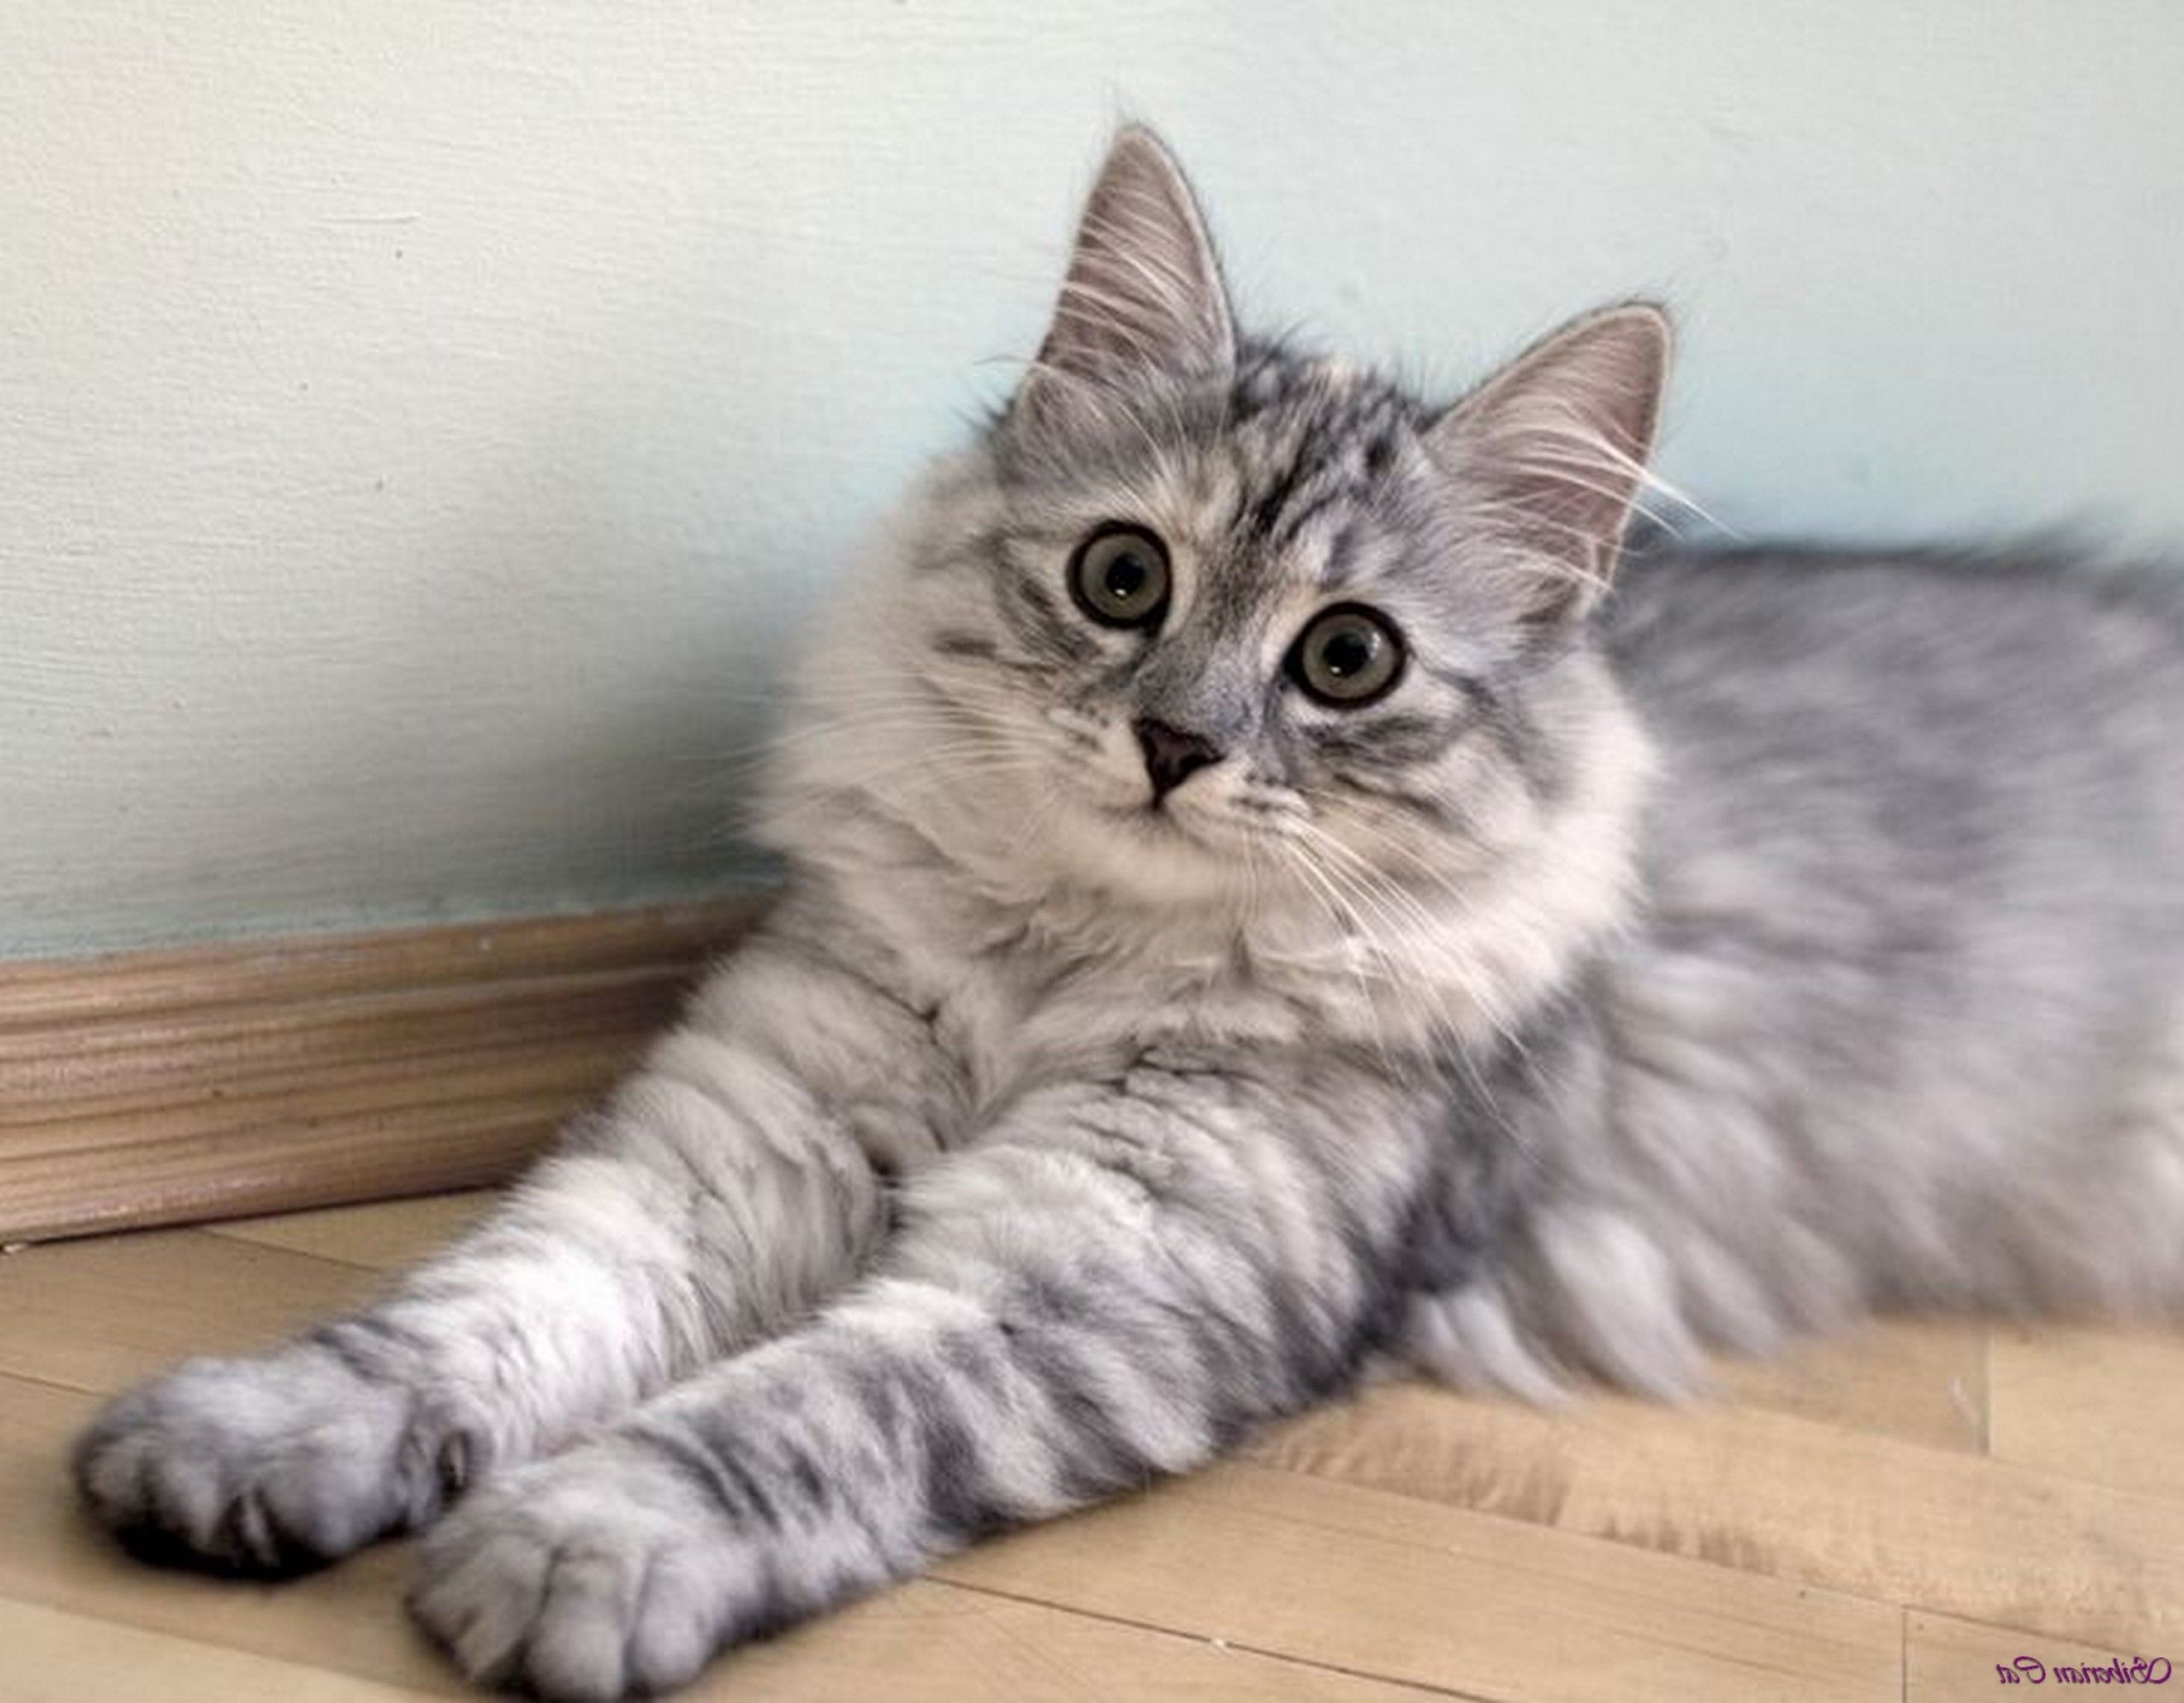 Grey Siberian Cat Black And White Siberian Cat Silver Tabby Siberian Cat Brown Tabby Siberian Cat Siberian Forest Cat Siz Siberian Cat Siberian Forest Cat Cats